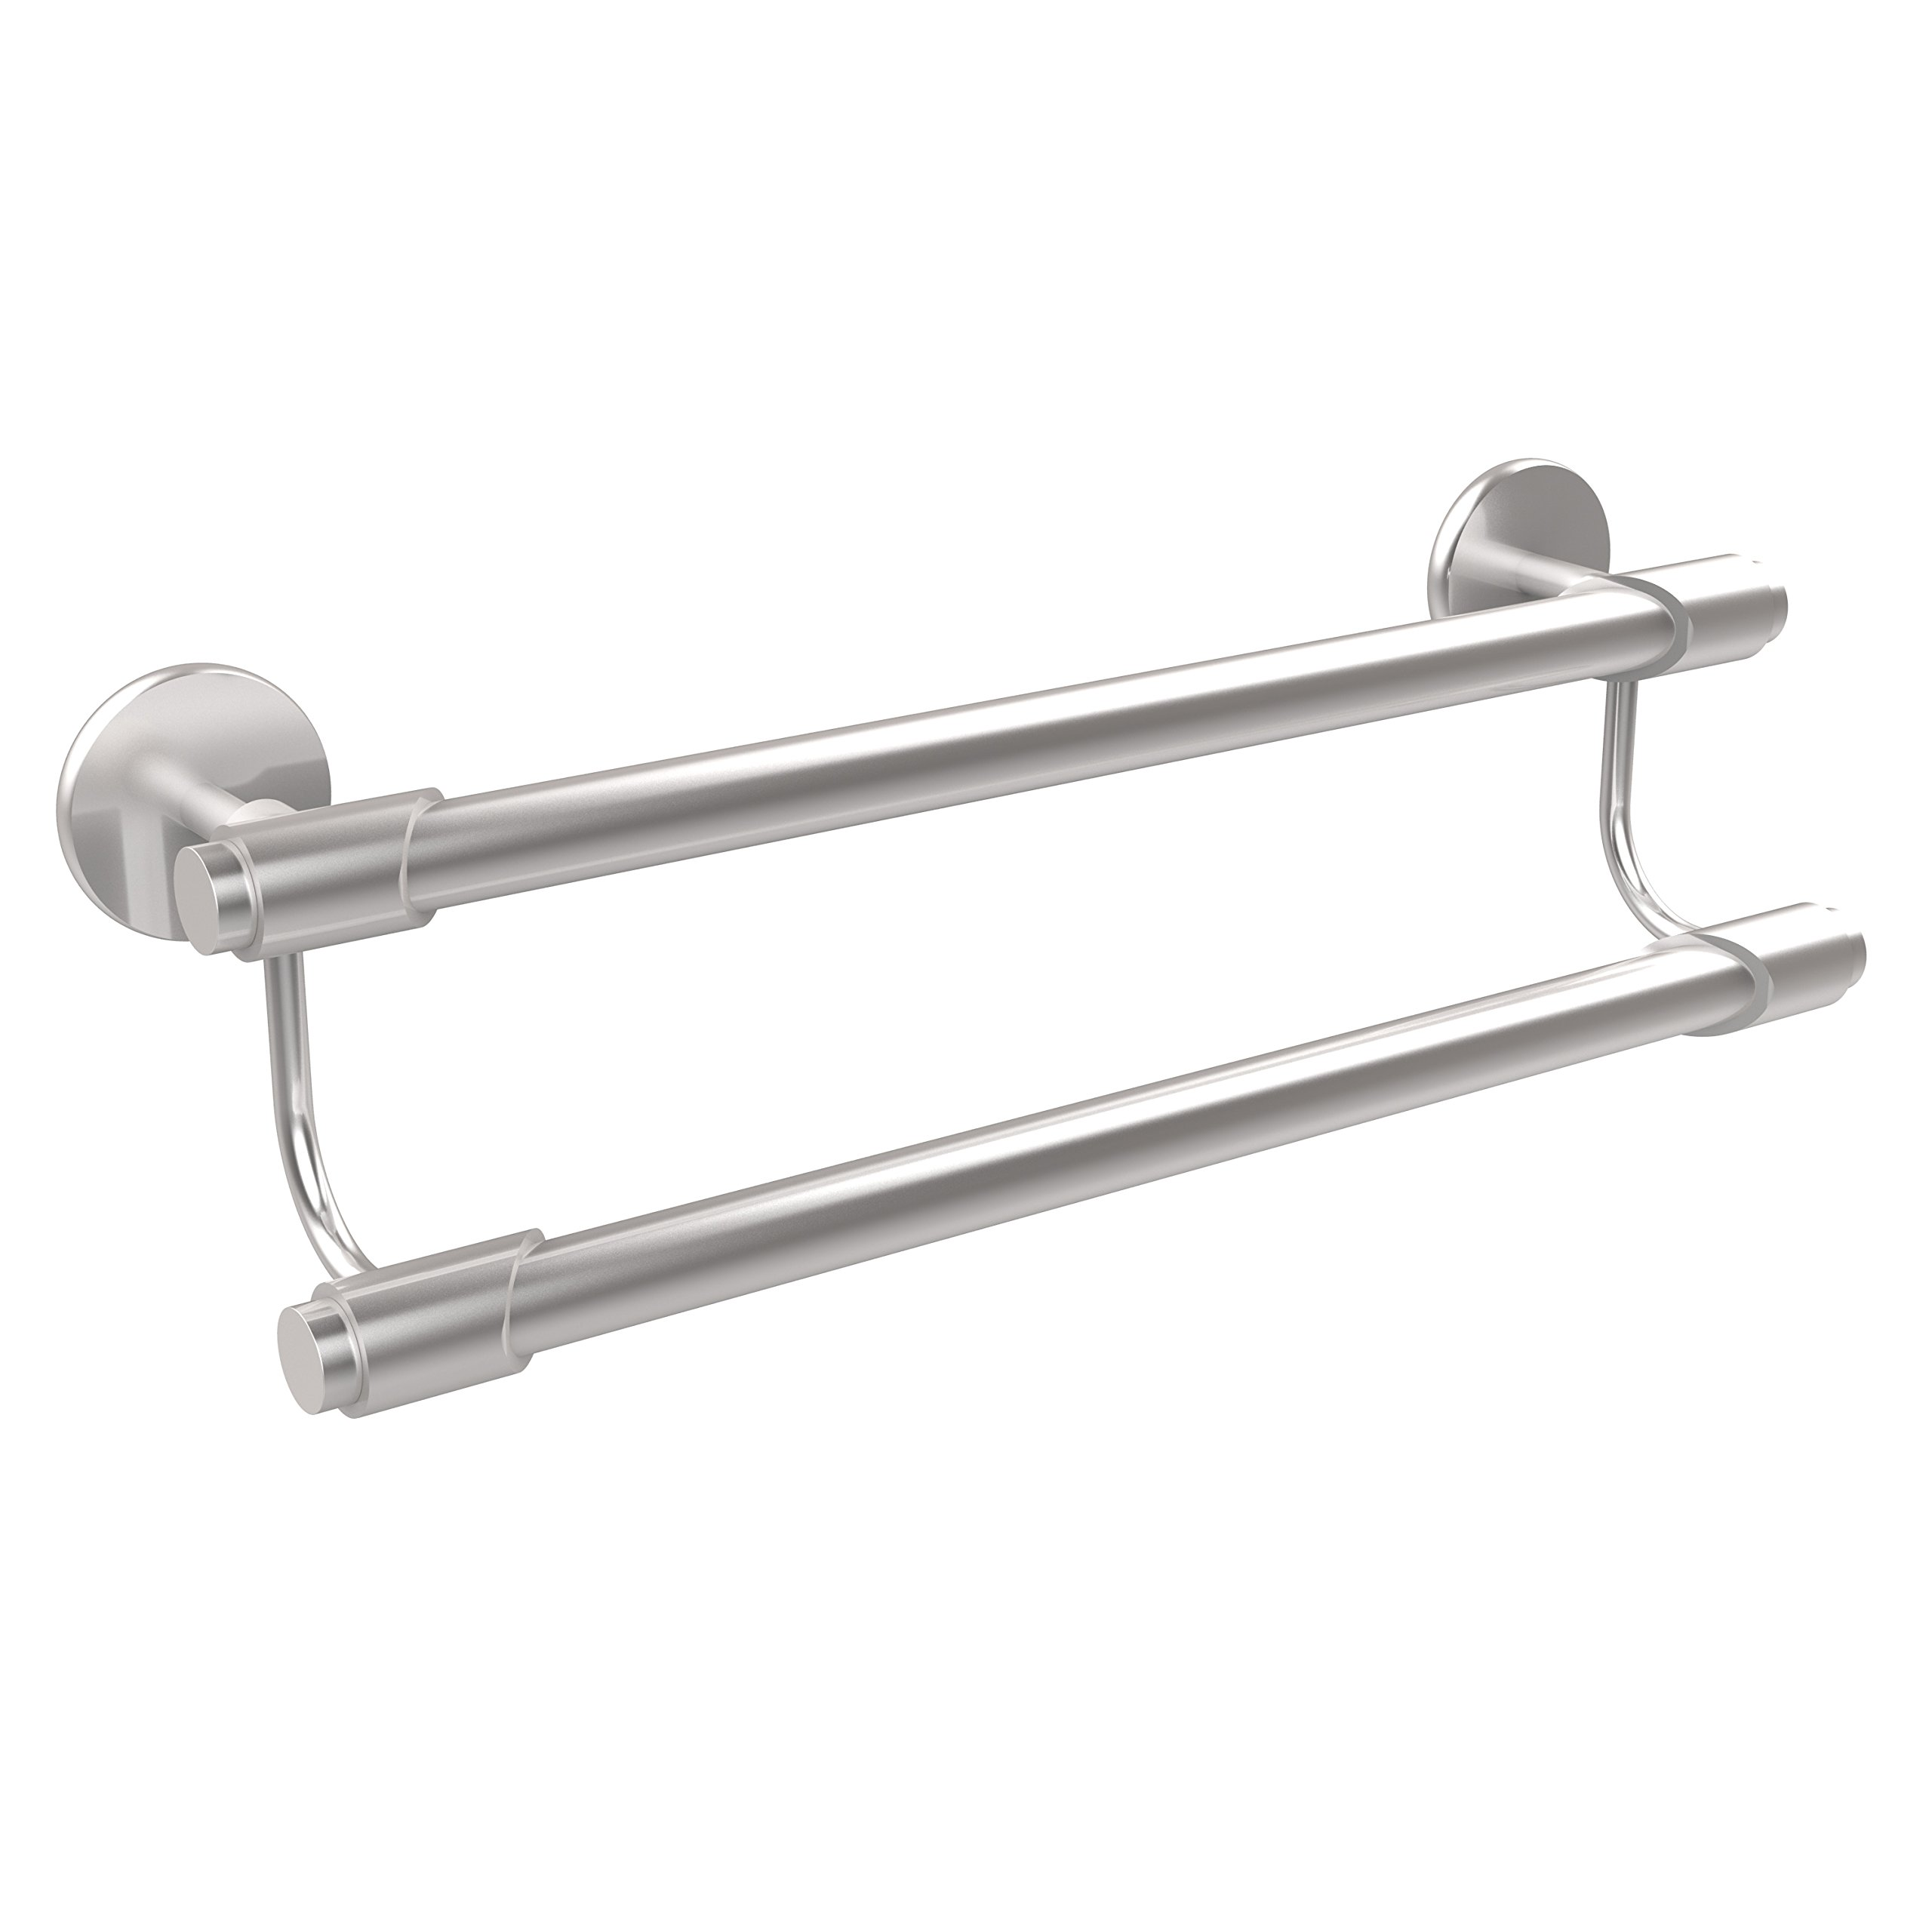 Allied Brass TR-72/36-SCH Double Towel Bar, 36-Inch, Satin Chrome by Allied Brass